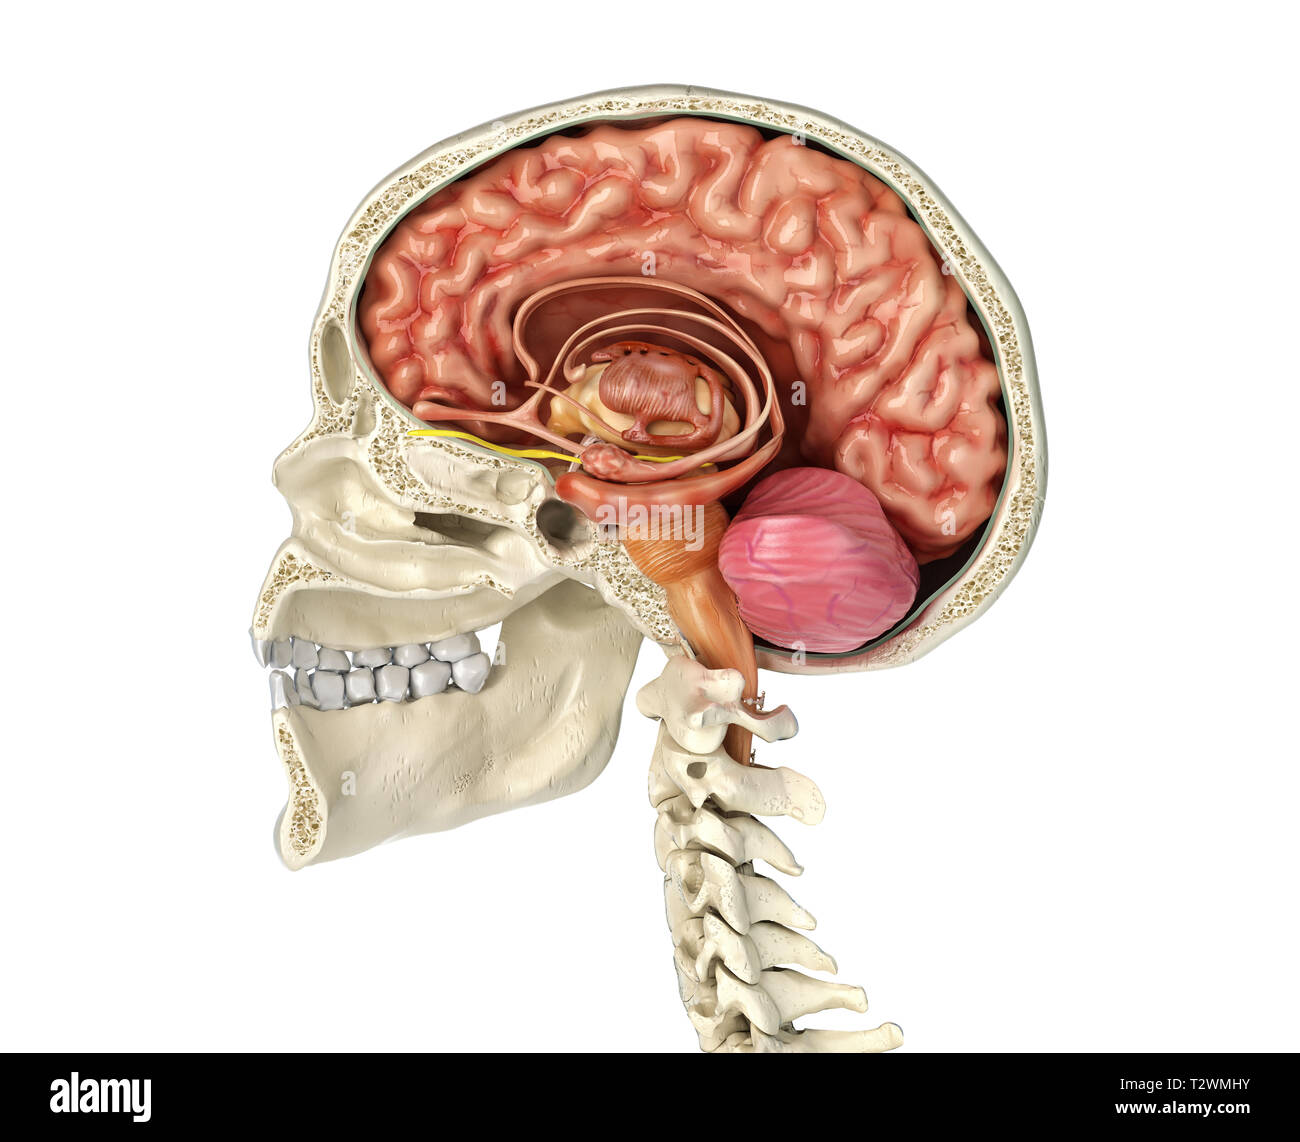 Human skull mid sagittal cross-section with brain. Side view on white background. - Stock Image